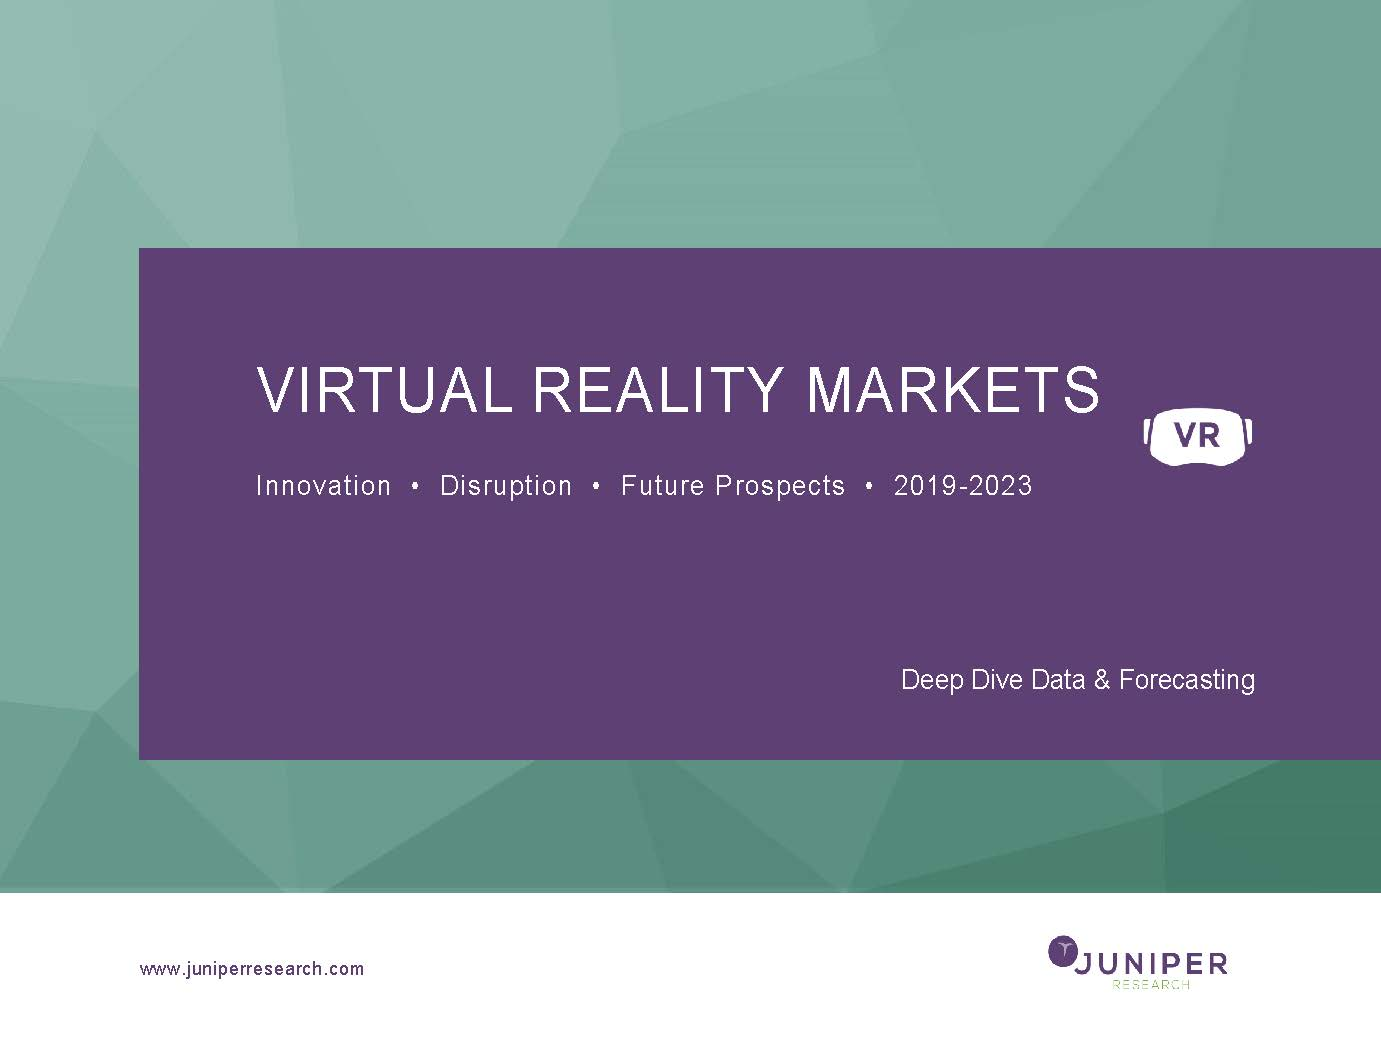 Virtual Reality Markets: Deep Dive Data & Forecasting 2019-2023